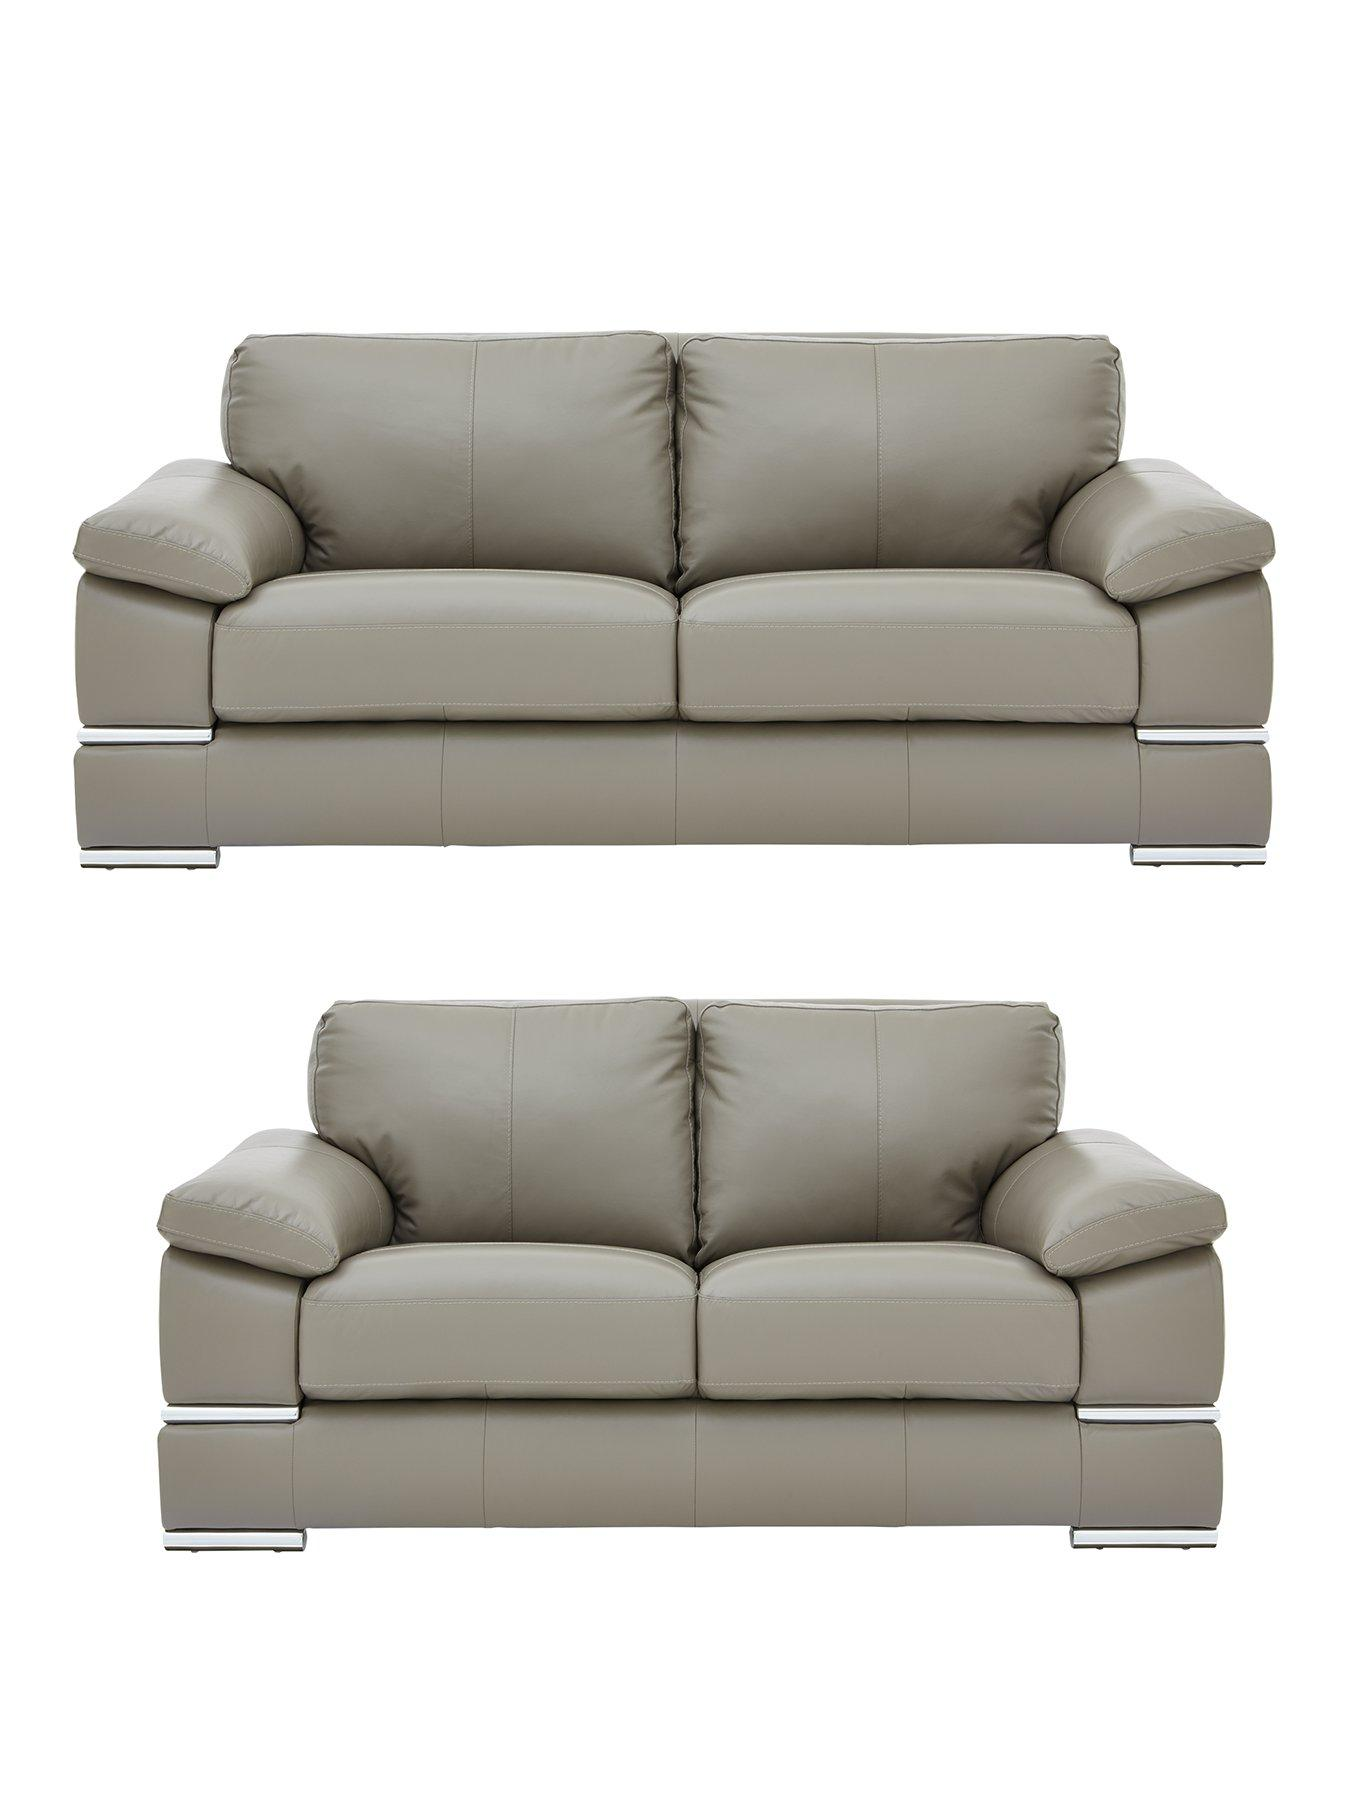 Grey | Leather Sofas | Sofas | Home U0026 Garden | Www.very.co.uk